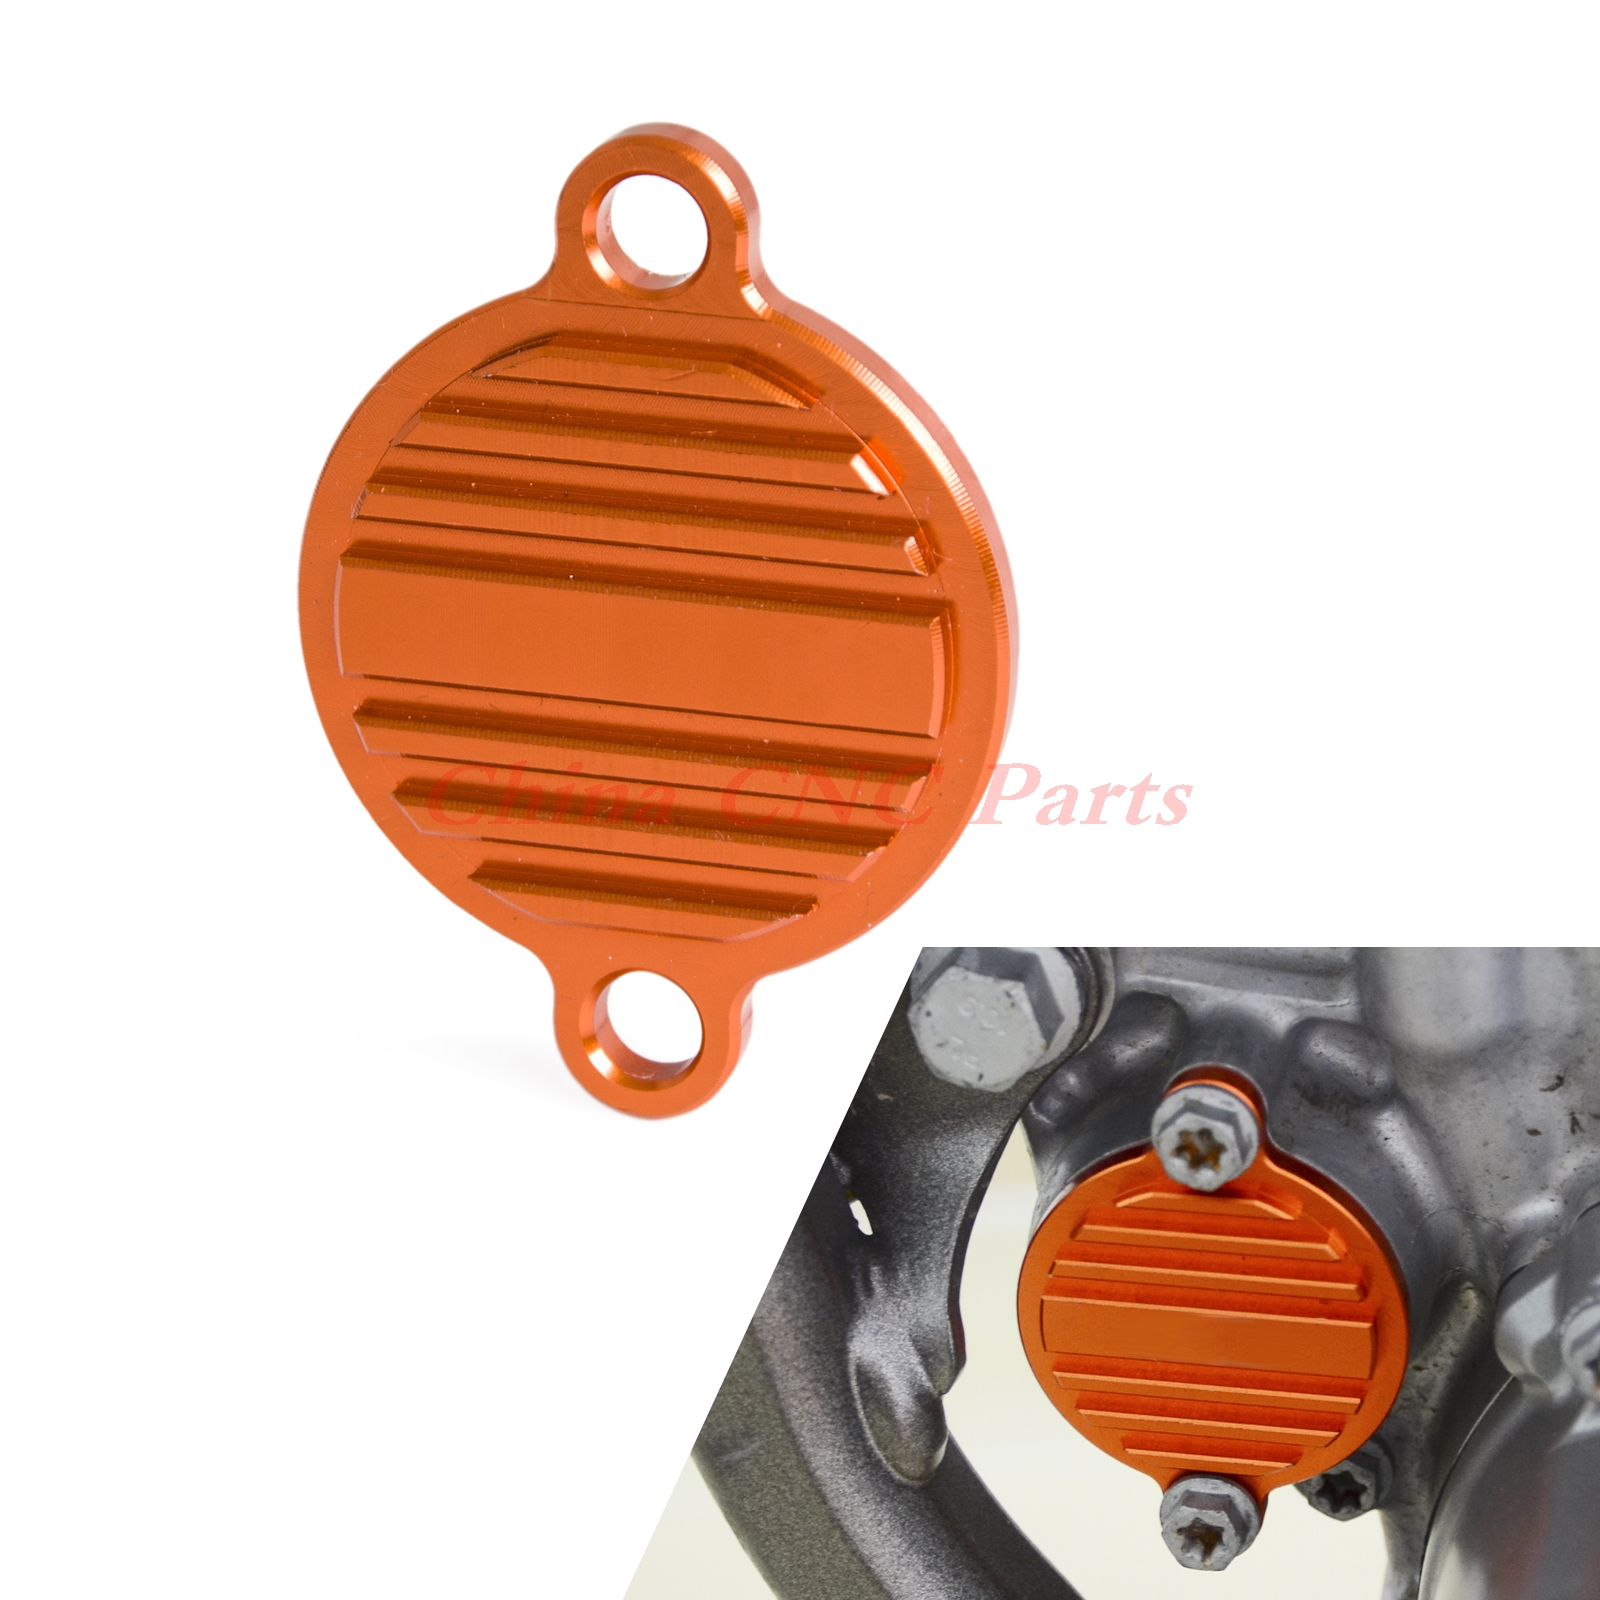 NICECNC New Billet Oil Filter Cover Fits For KTM 250 350 450 400 530 EXC EXC-F SX-F SXS-F SIX DAYS SMR Freeride 350 orange cnc billet factory oil filter cover for ktm sx exc xc f xcf w 250 400 450 520 525 540 950 990